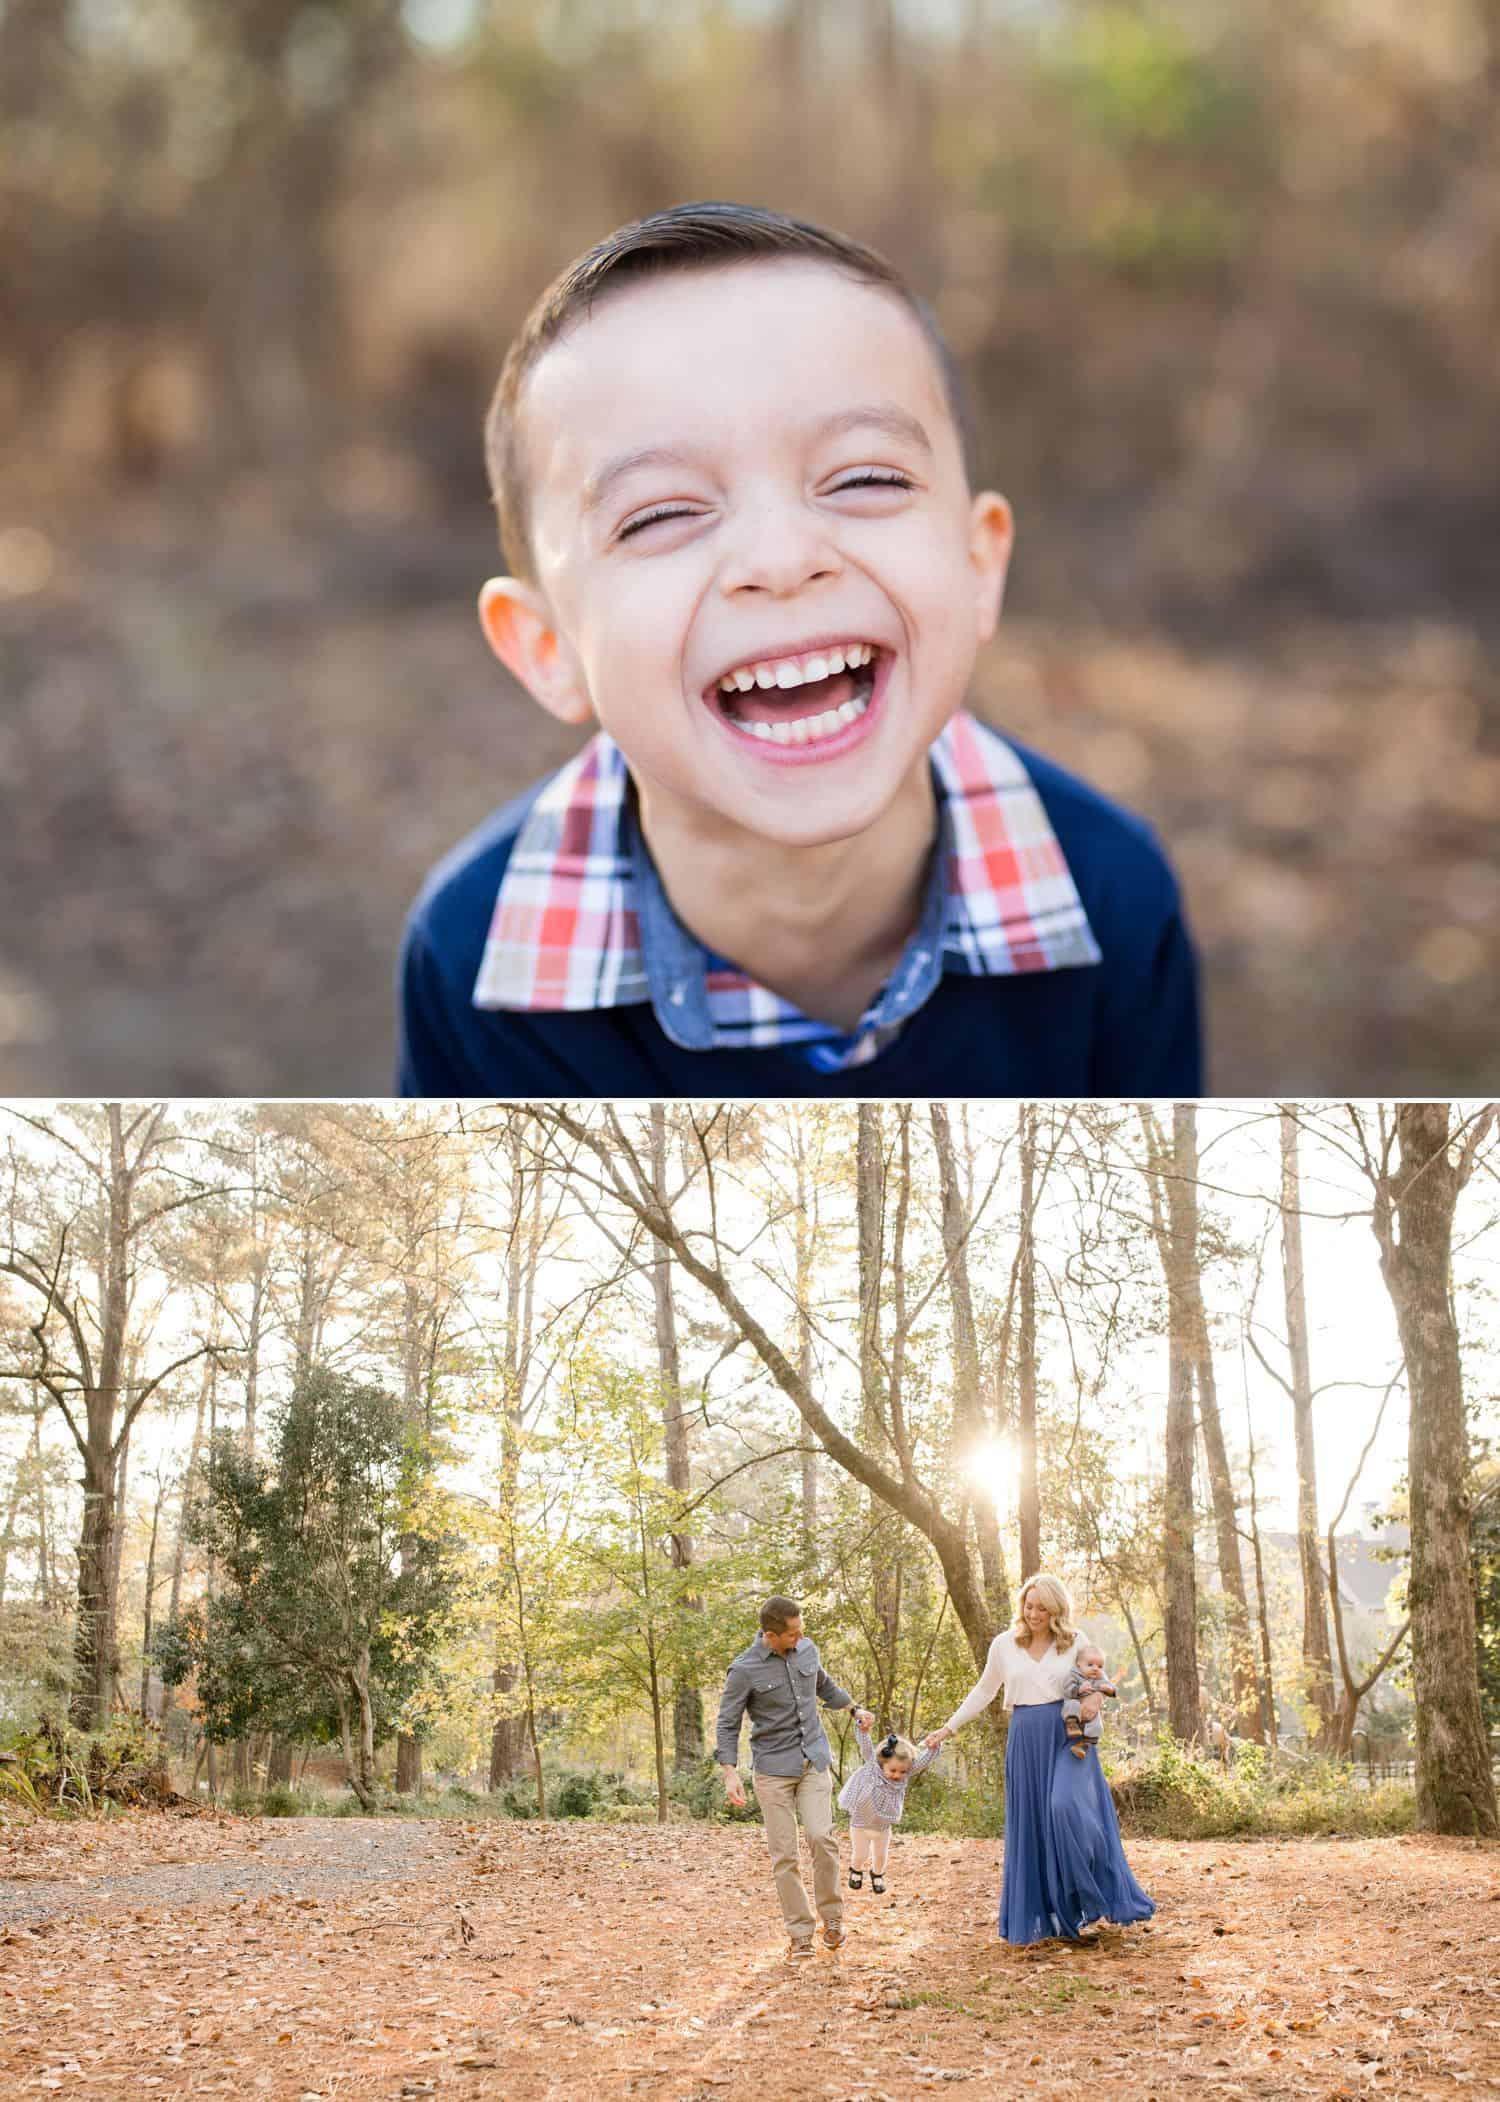 How To Get More Photography Clients? Start Saying No! - Outdoor child and family photography by Jenny Perry.